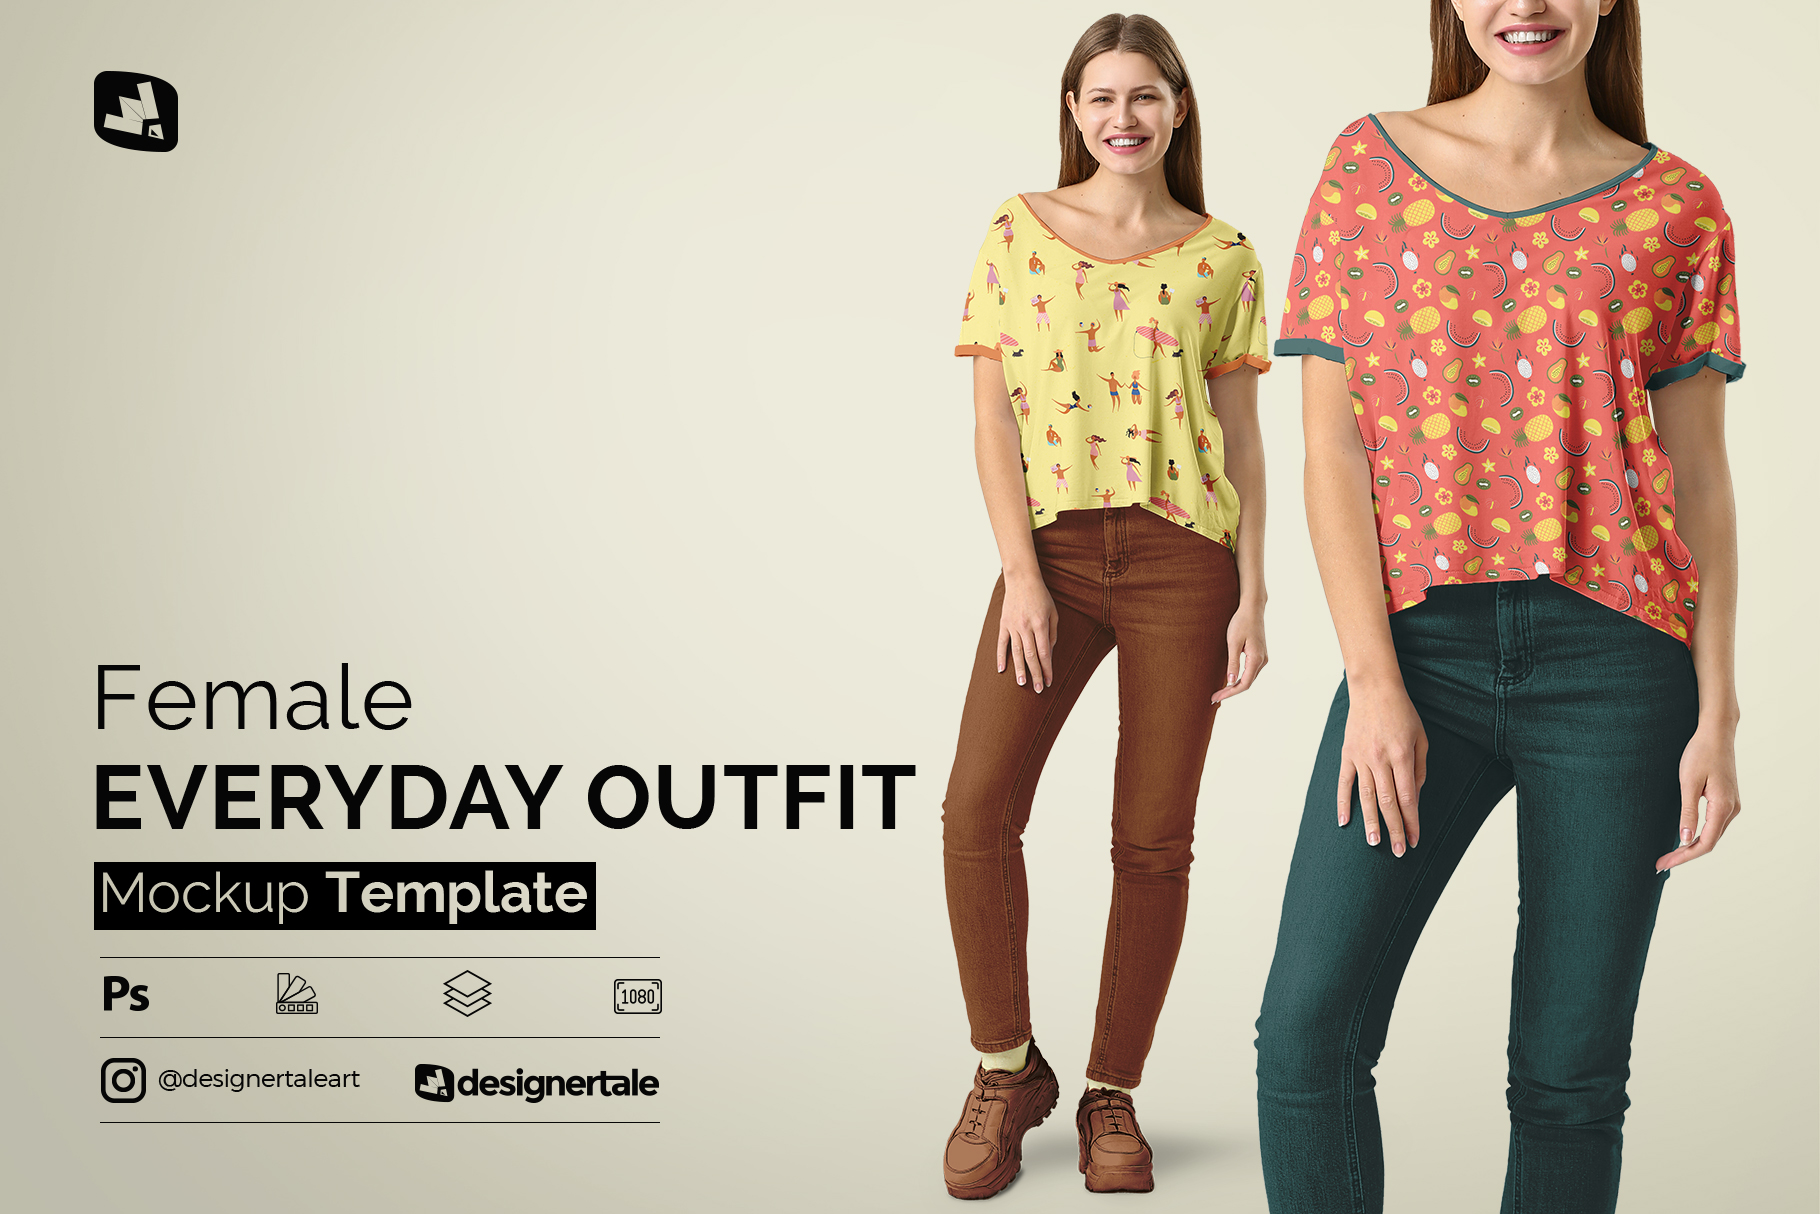 female everyday outfit mockup